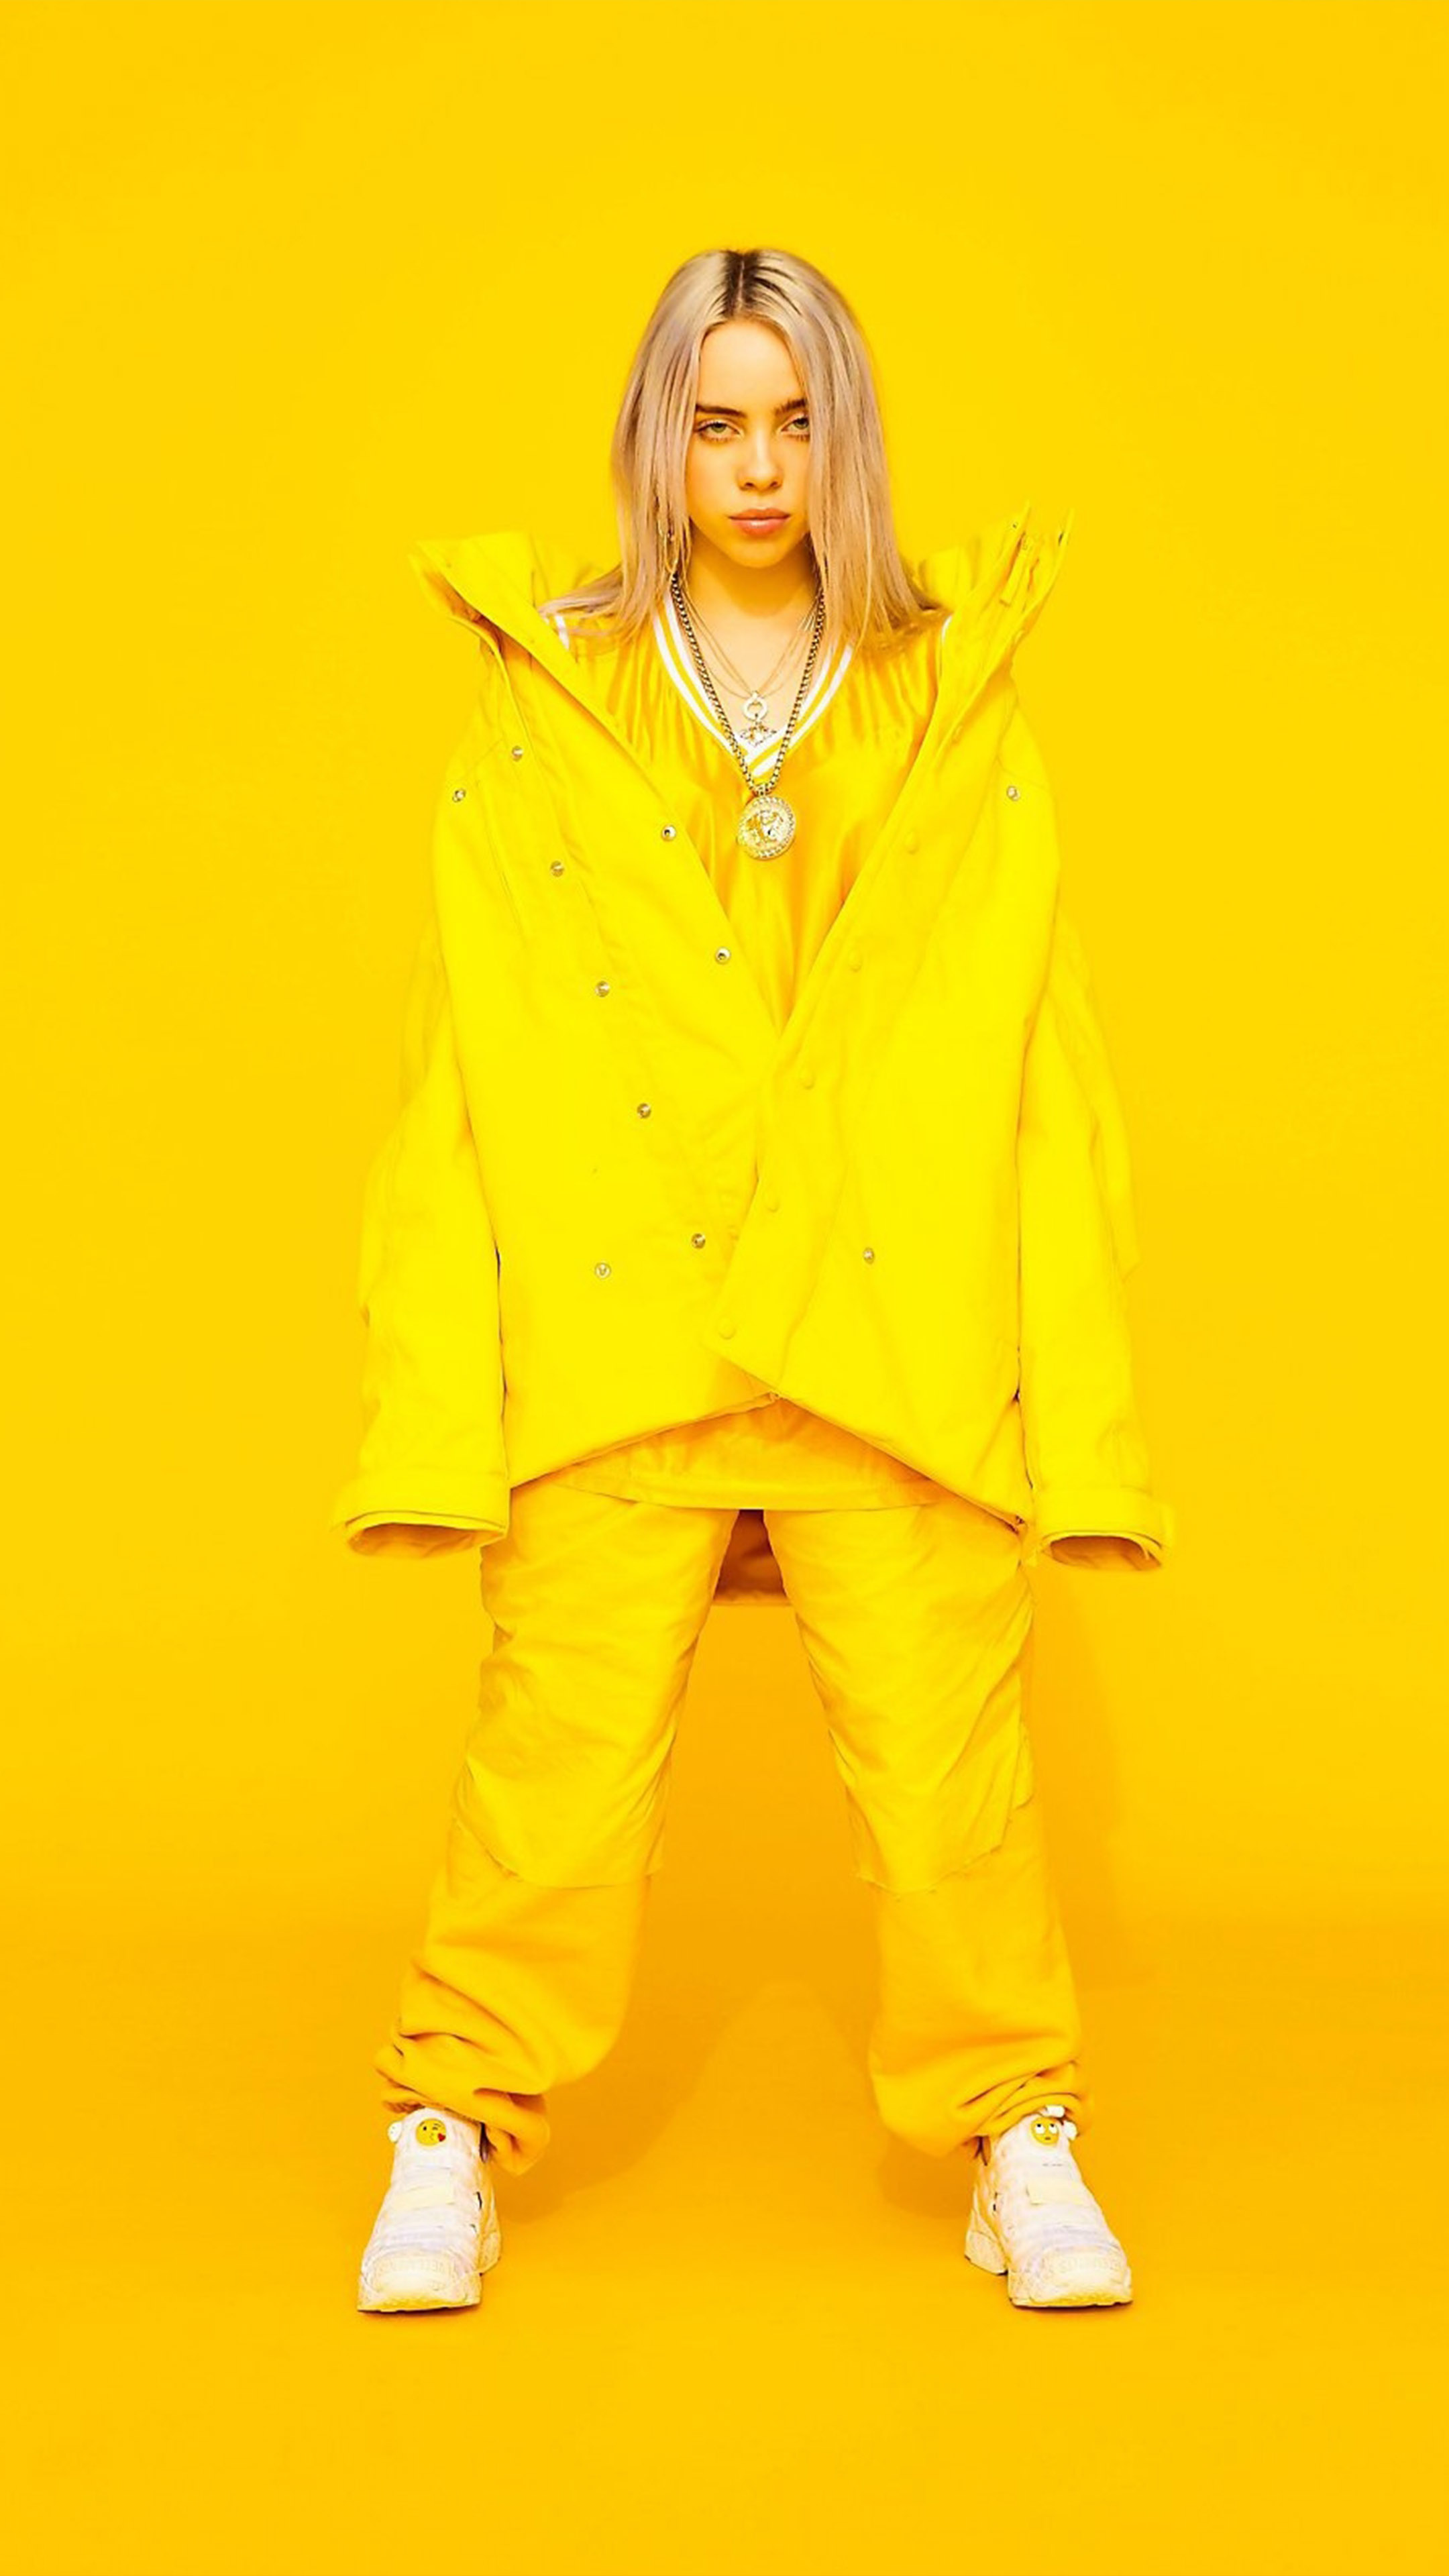 Billie Eilish Yellow Background 4k Ultra Hd Mobile Wallpaper